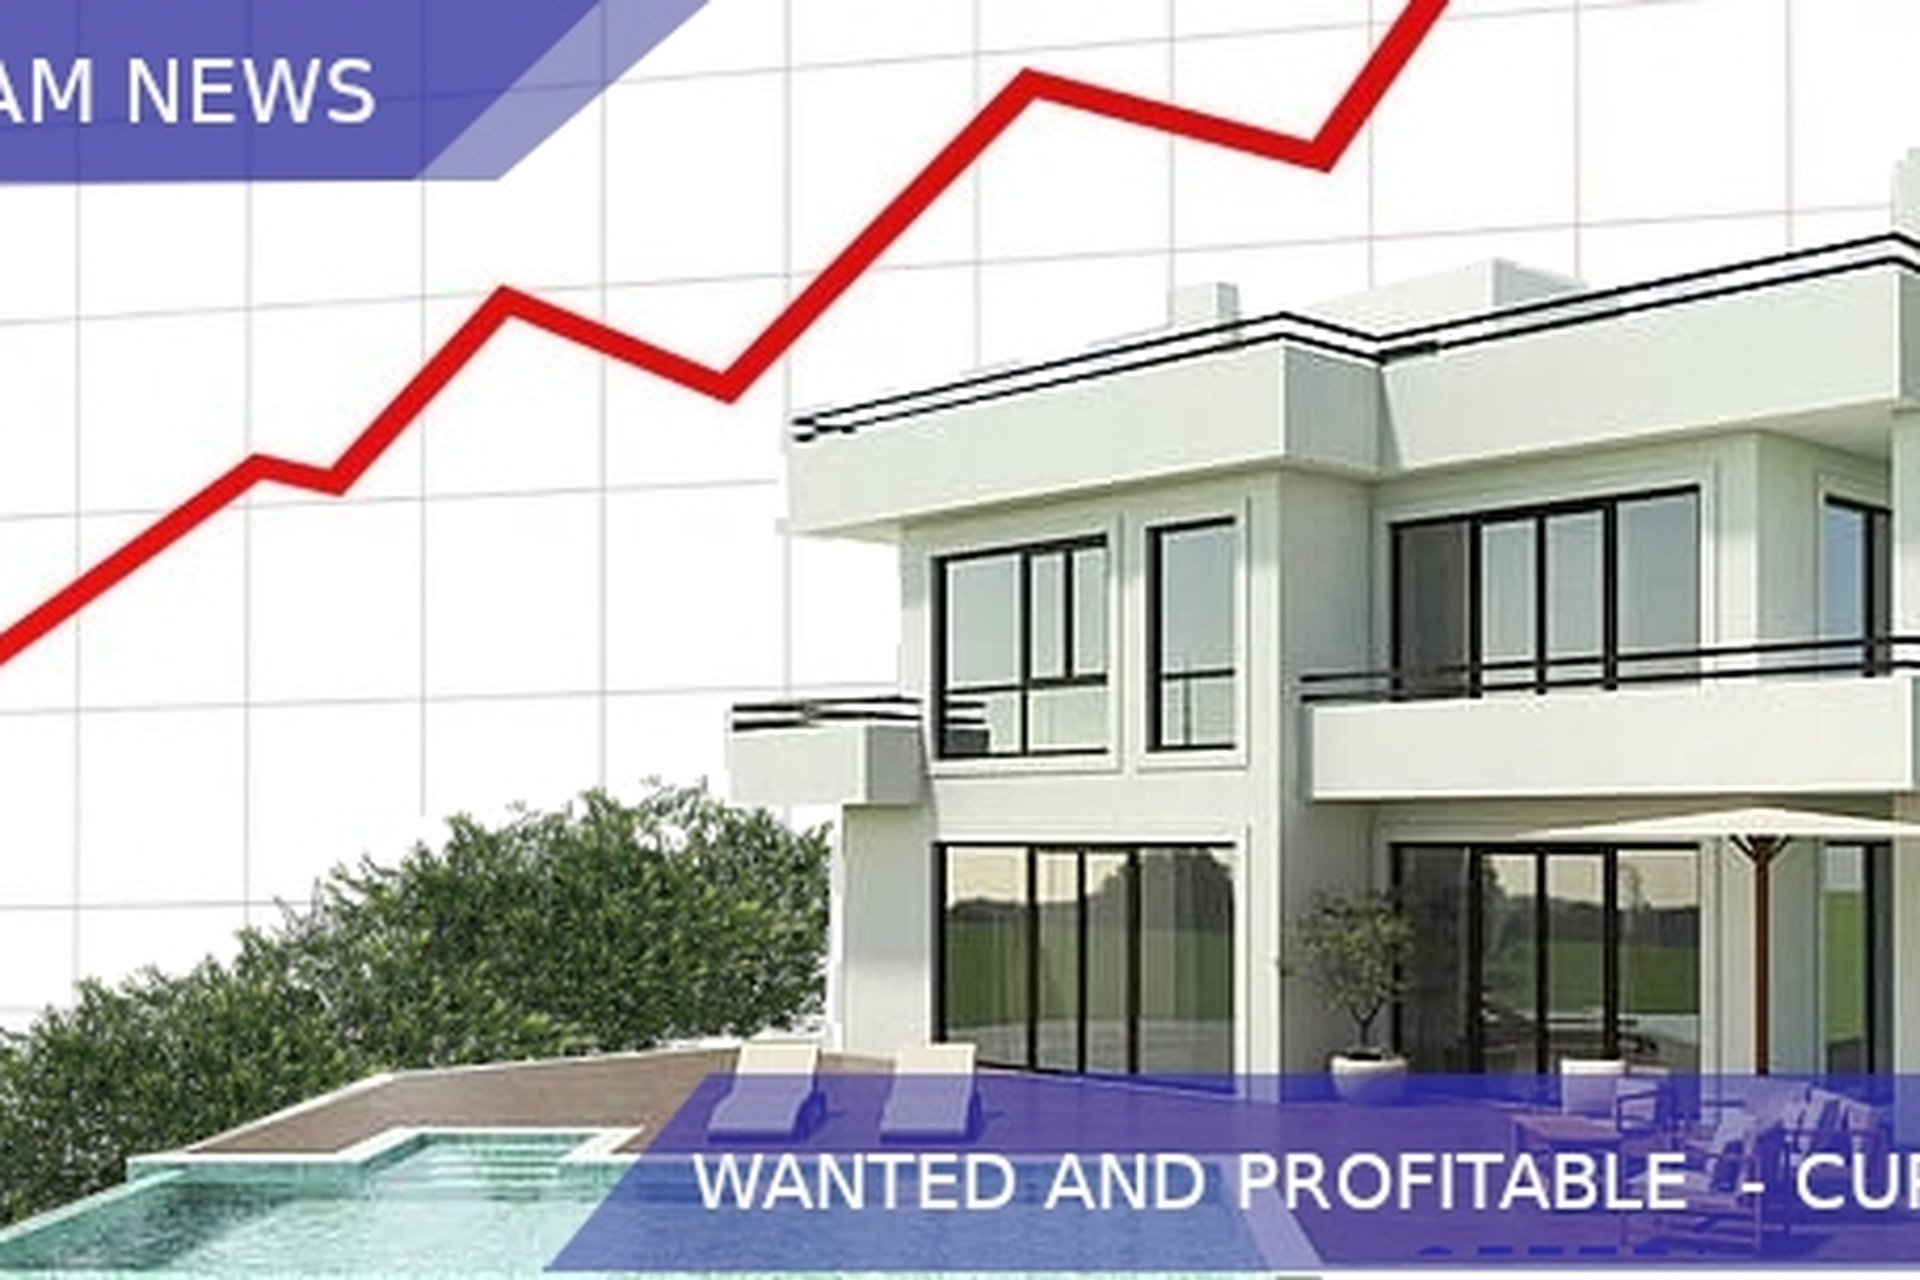 ADRIATEAM NEWS - WANTED AND PROFITABLE REAL ESTATES - CURRENT OFFER!